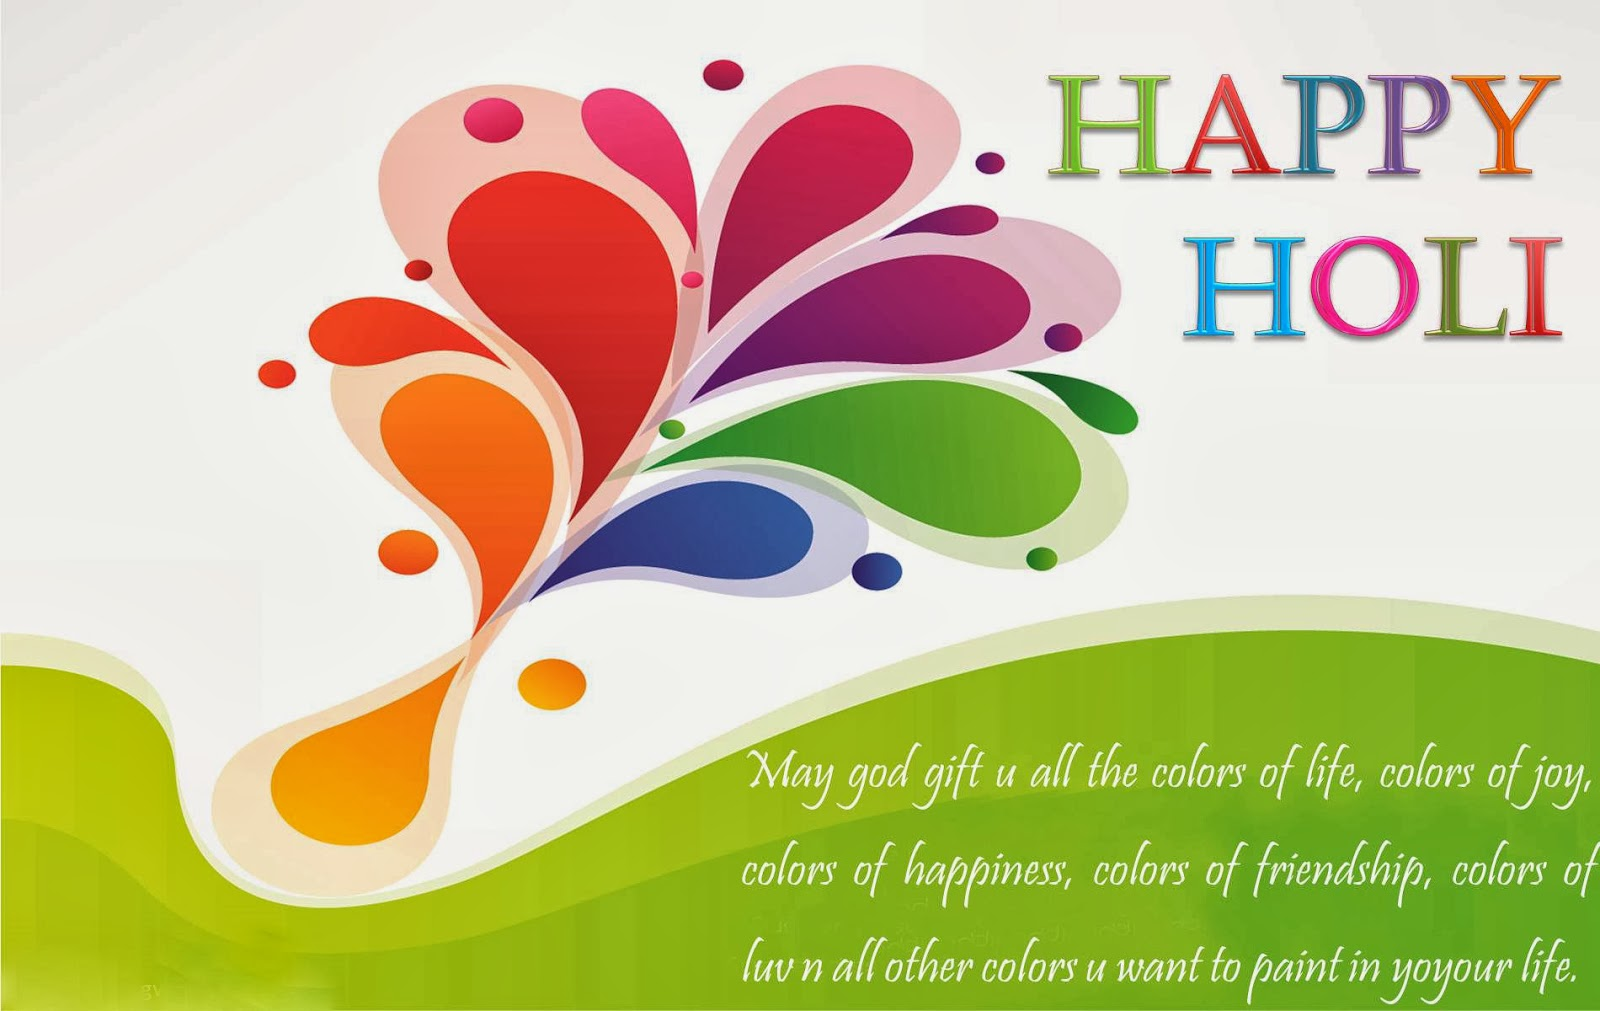 Happy holi HD wishes card cover photos